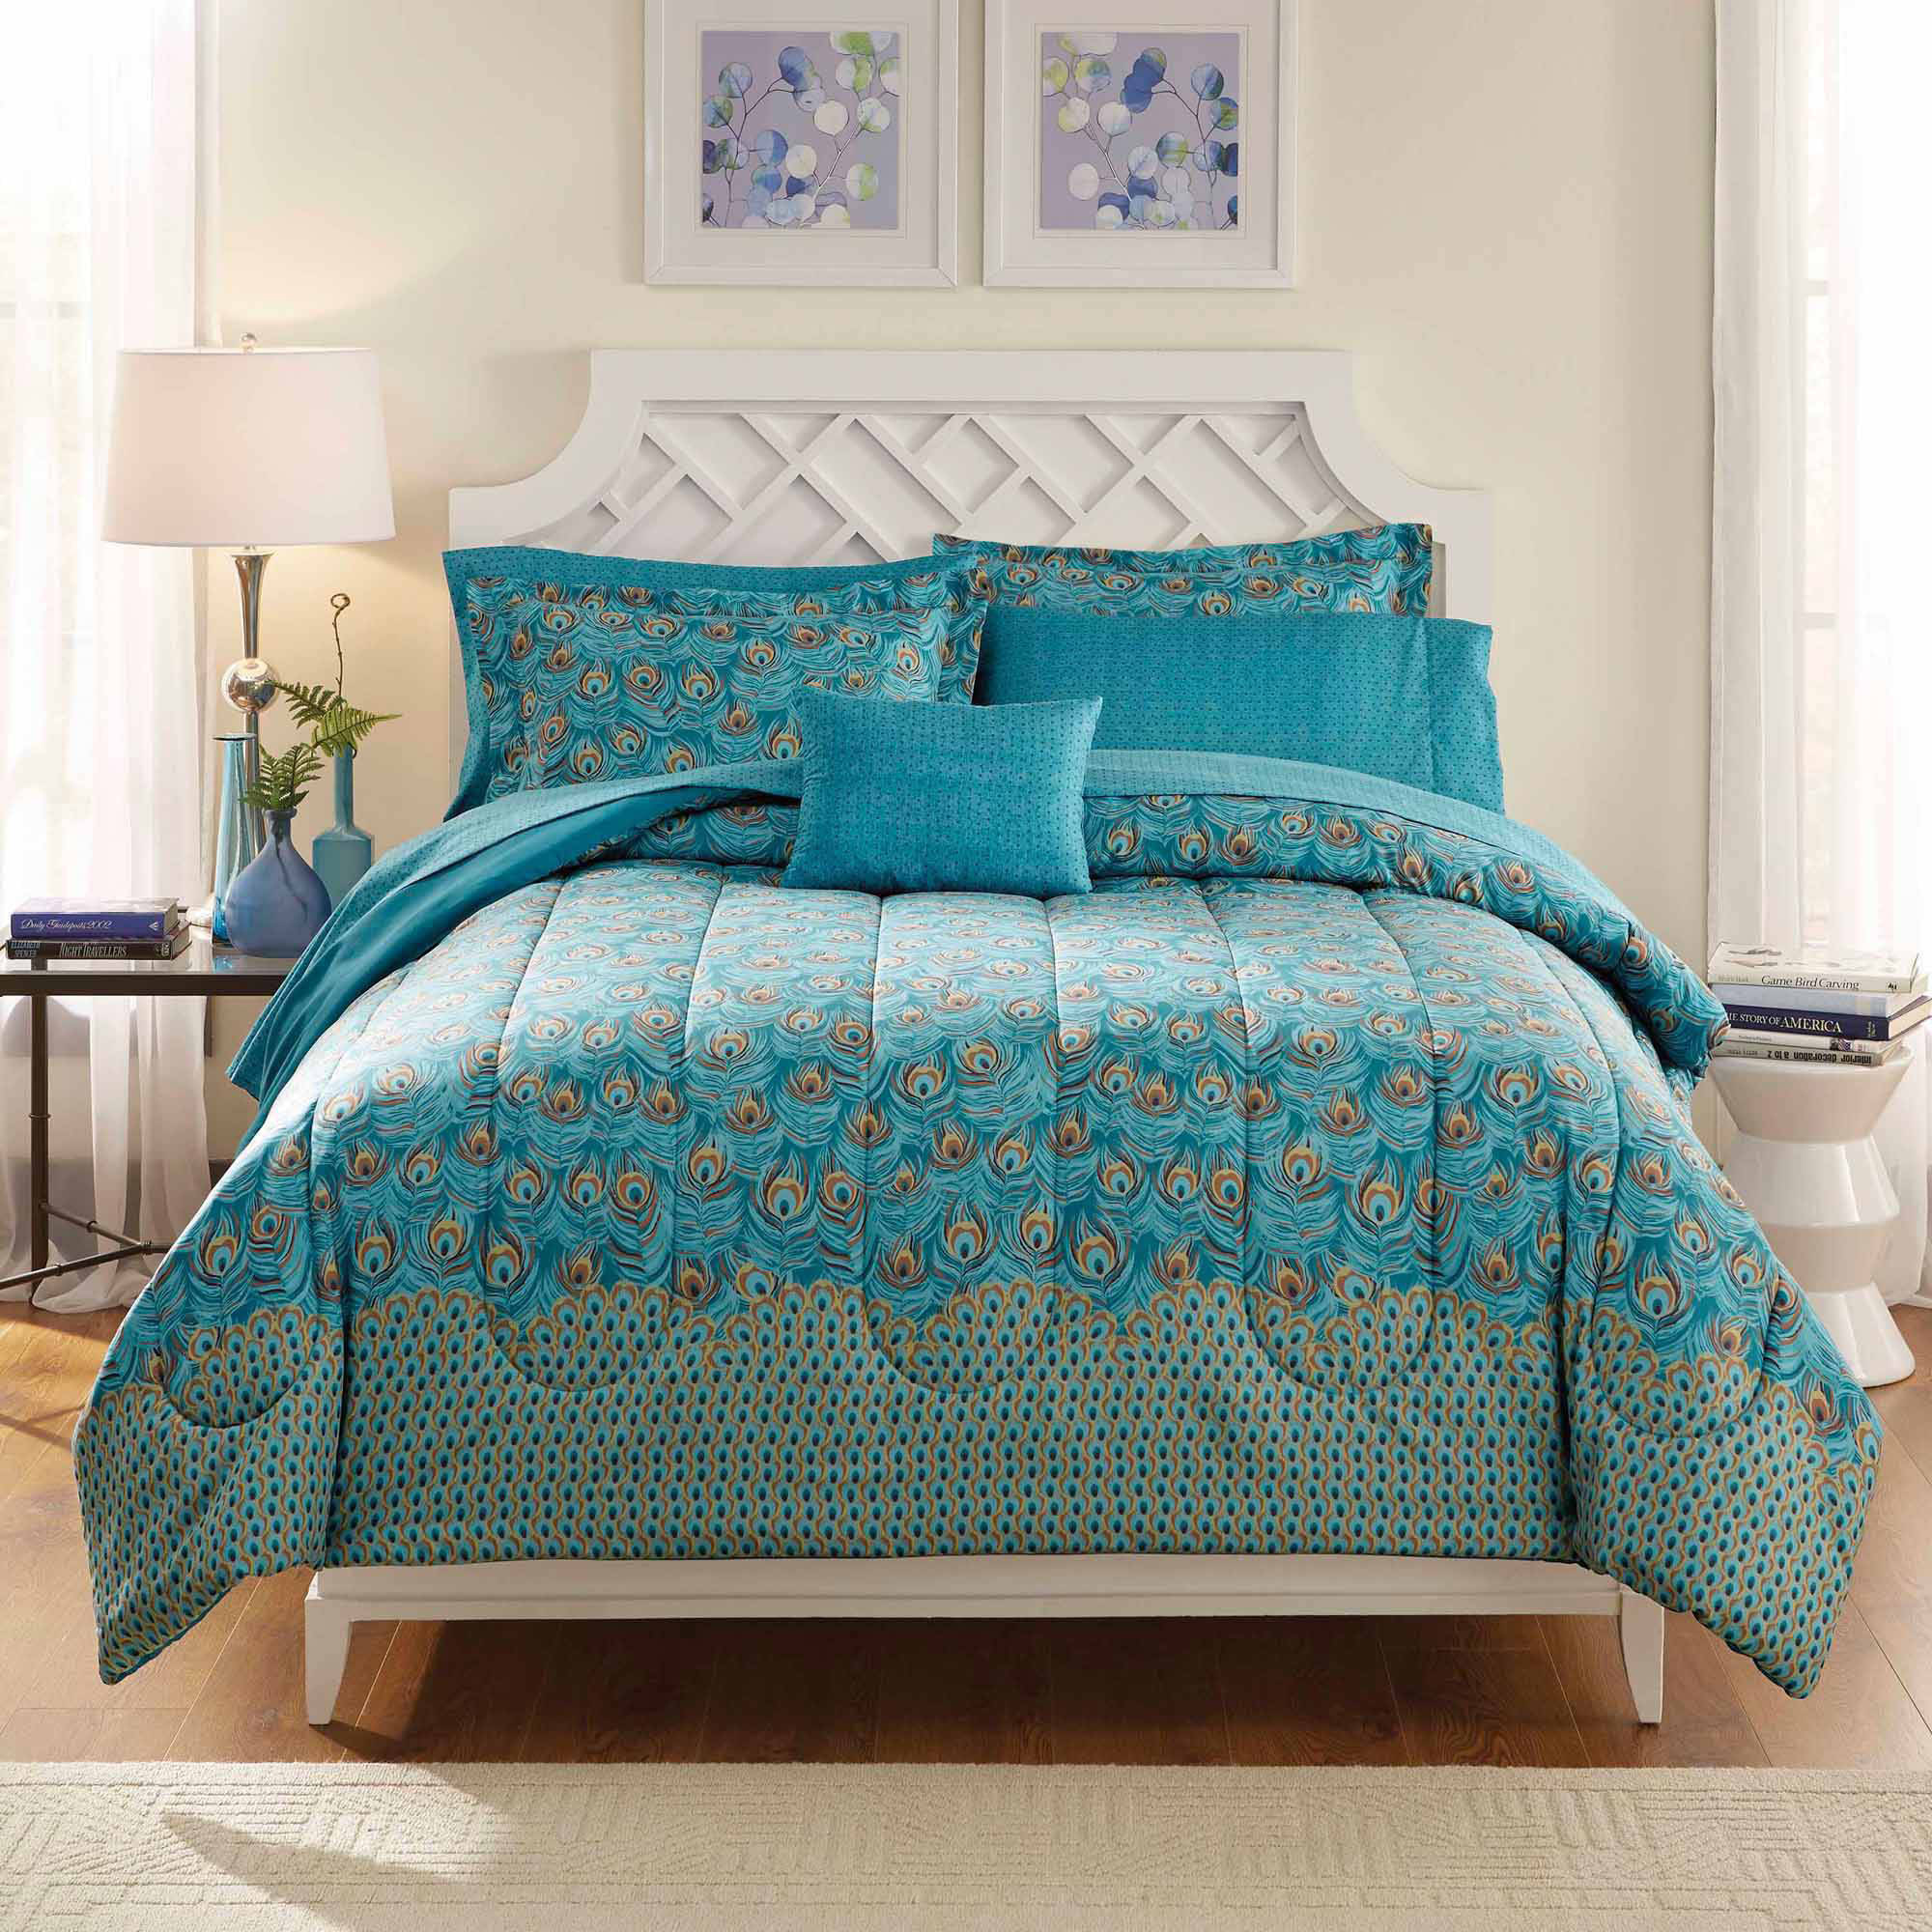 Bedding Comforter Sets Sheets Bed In A Bag Towels Designs